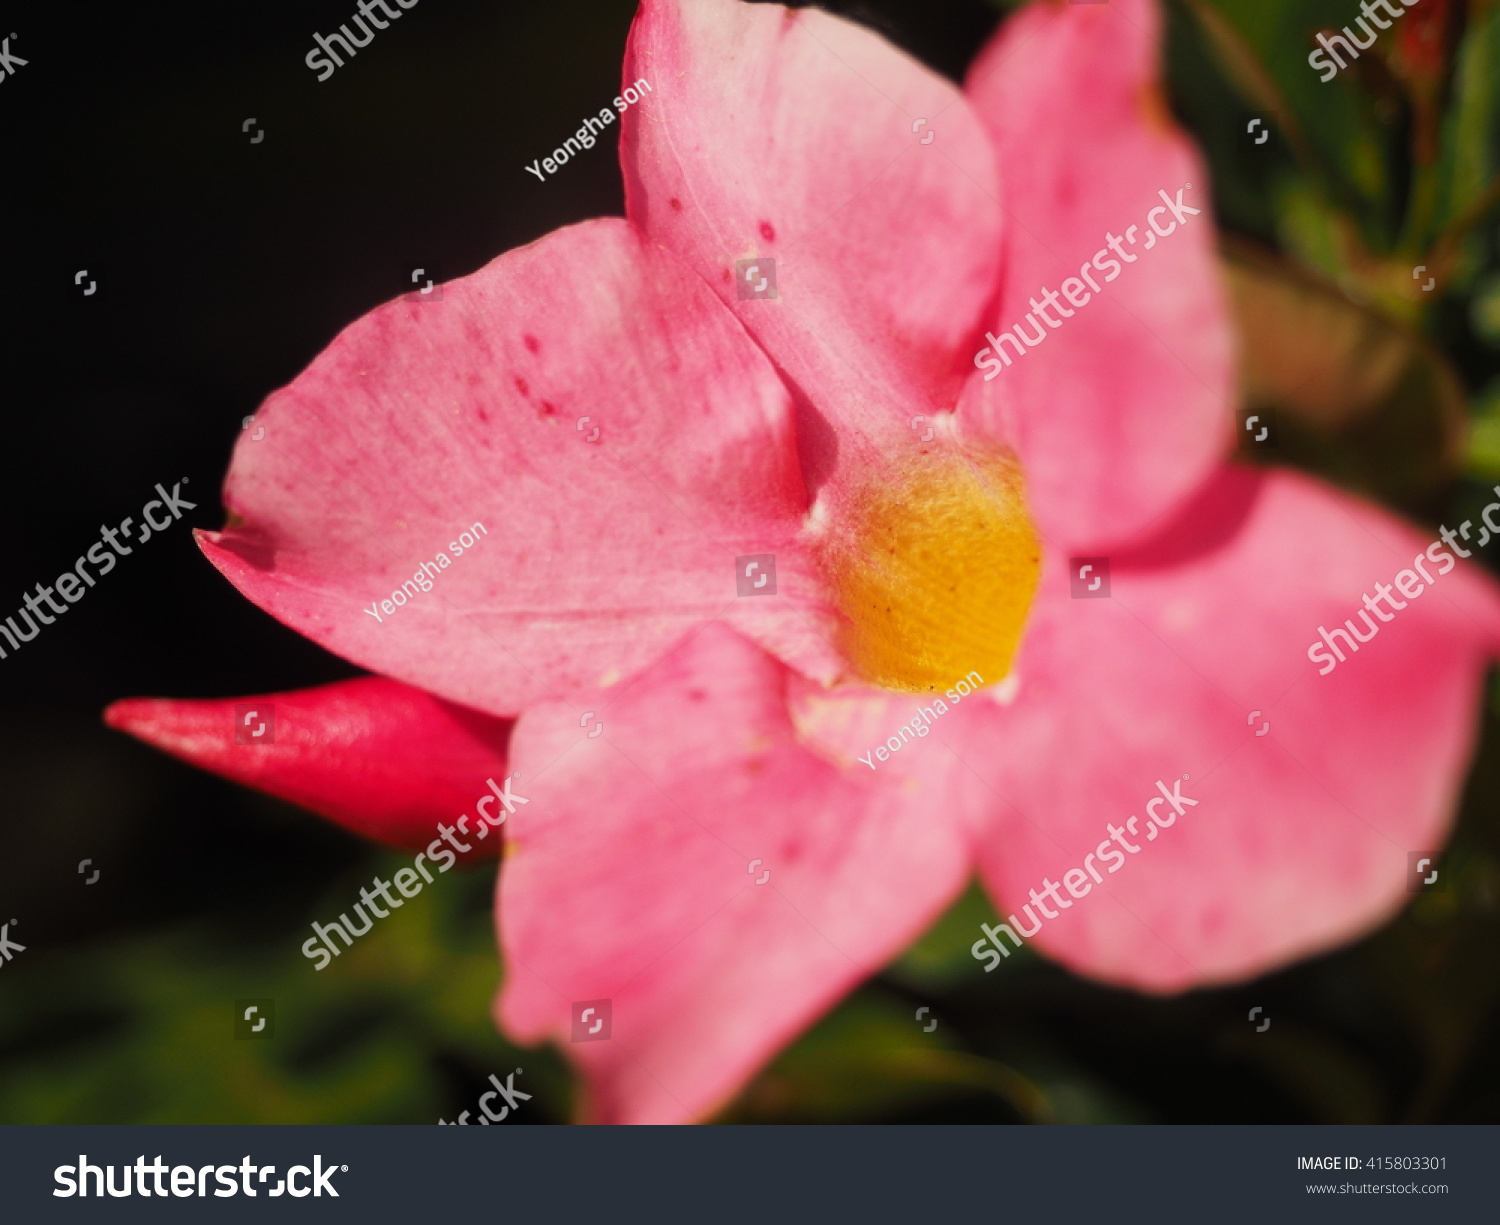 Royalty free pink star shaped flowers are beautiful 415803301 pink star shaped flowers are beautiful stock photo mightylinksfo